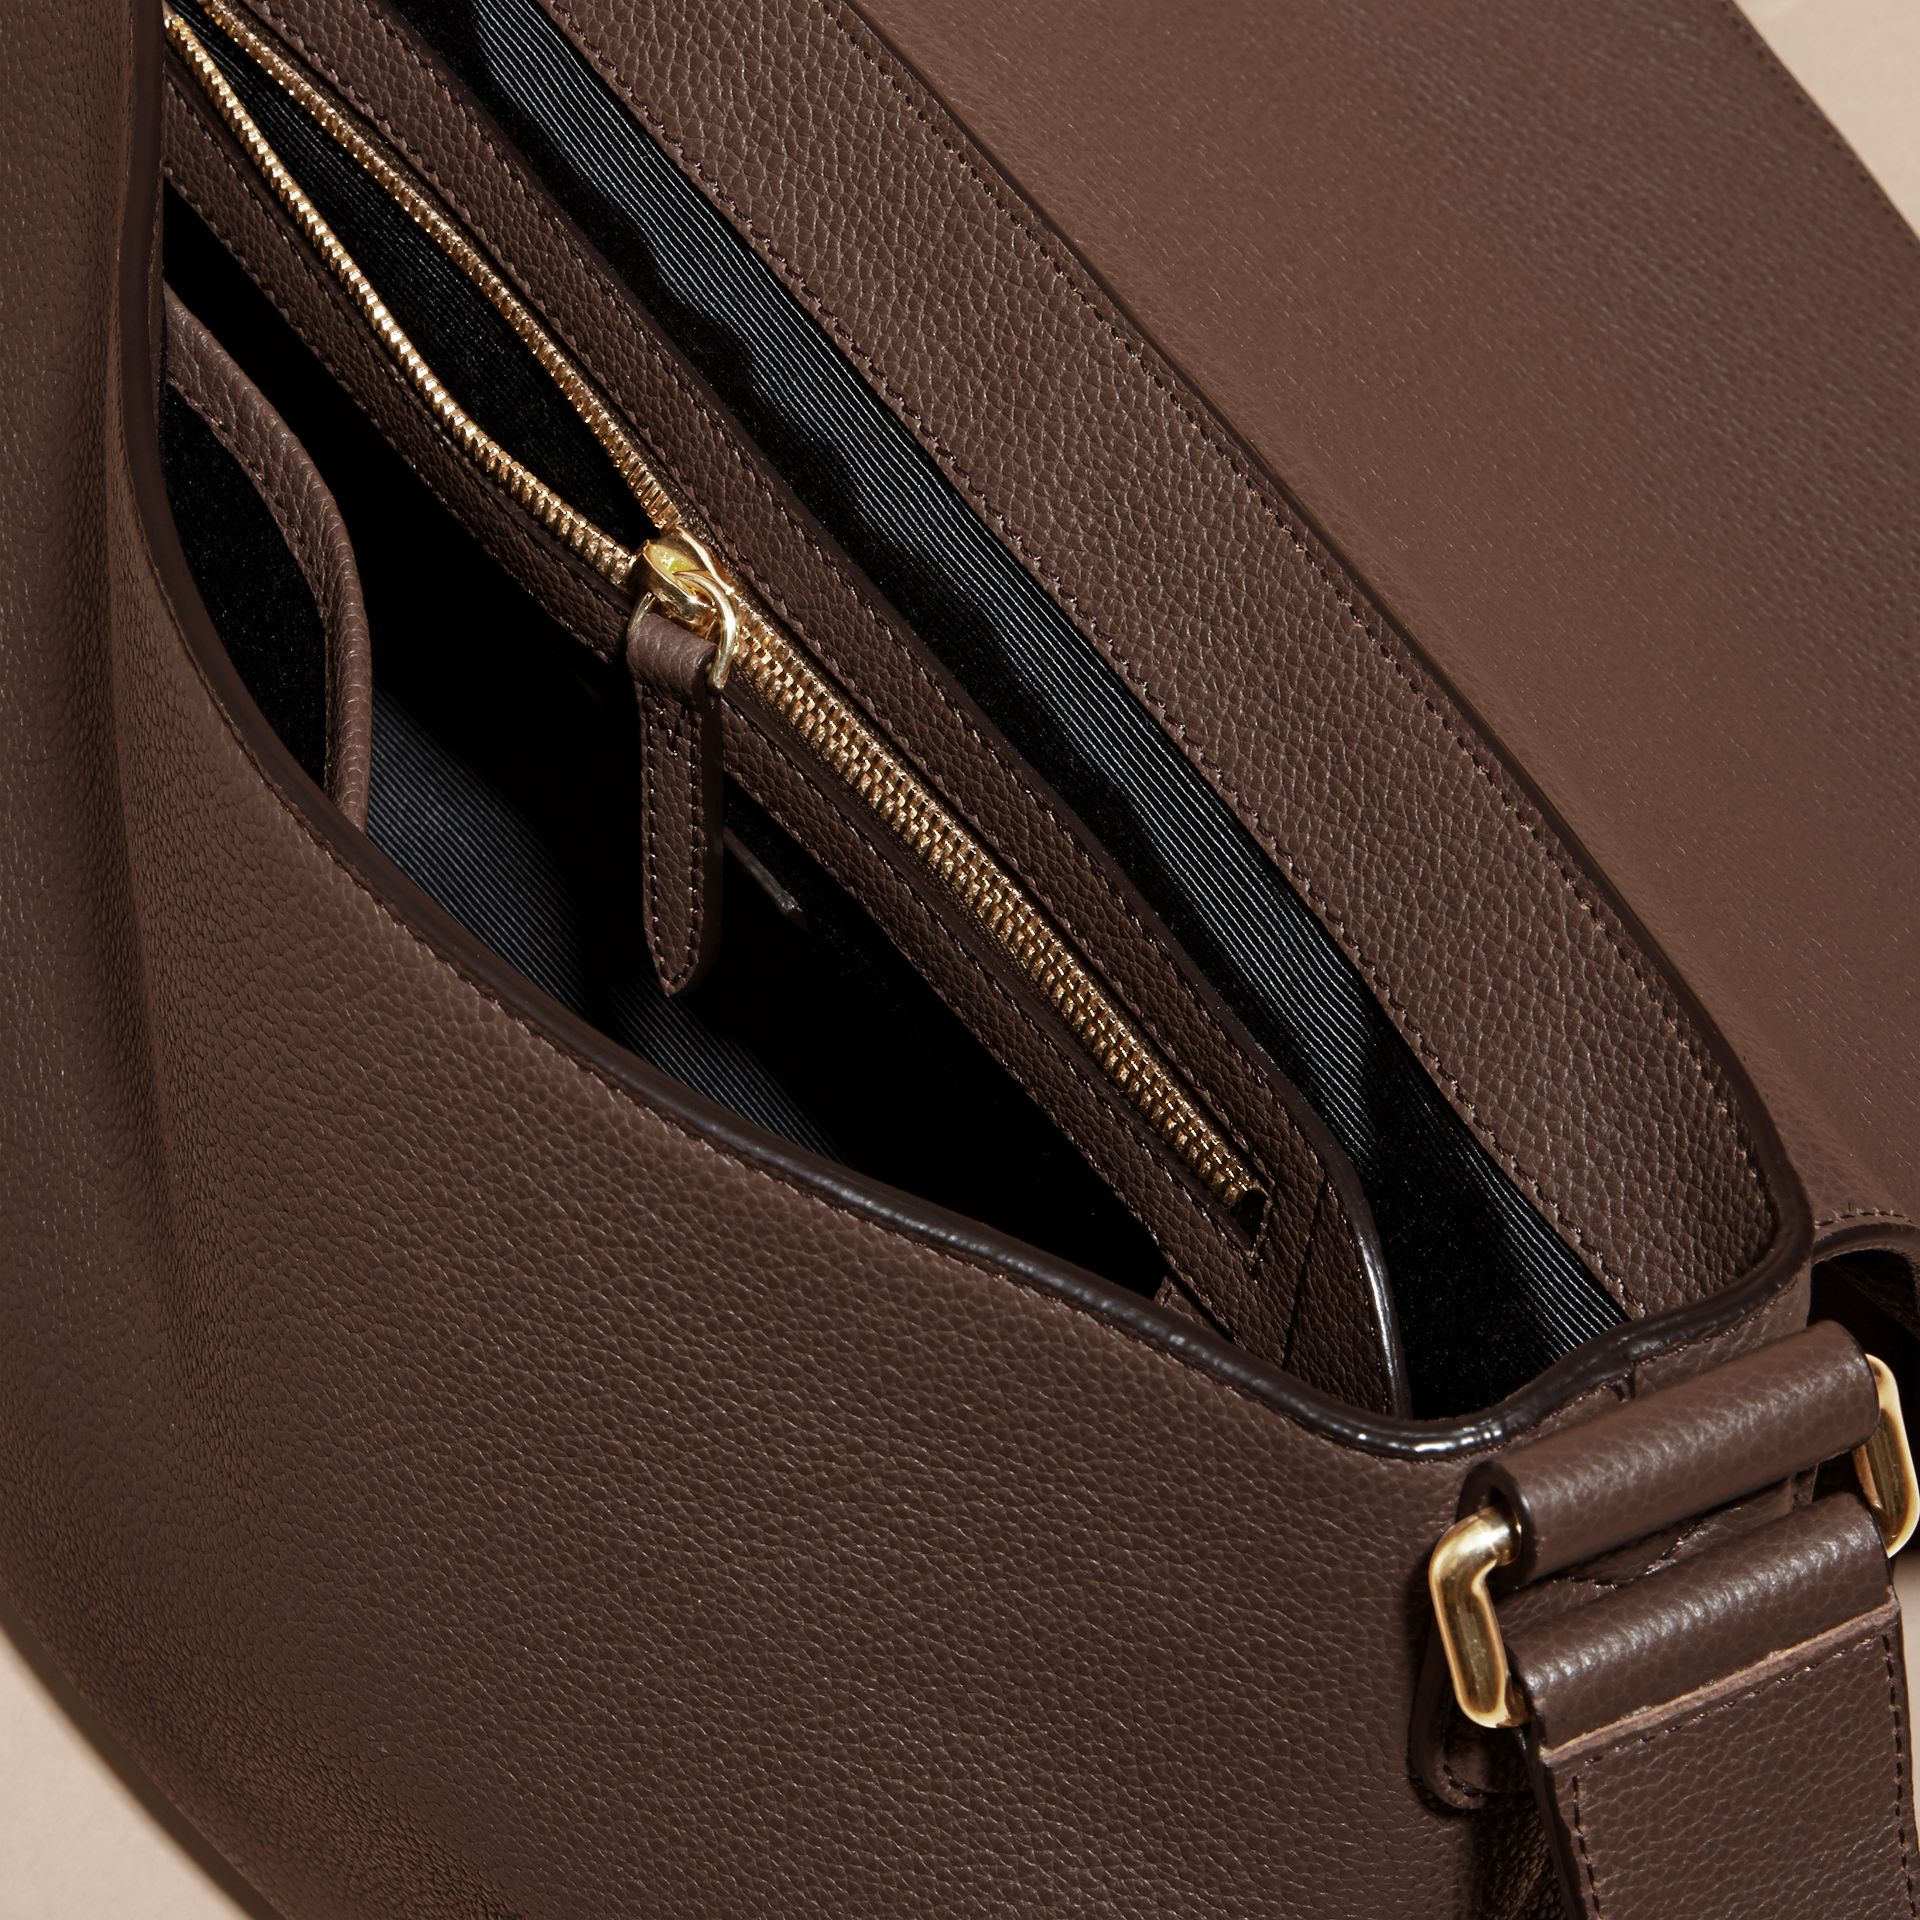 Deep taupe brown Grainy Leather Messenger Bag Deep Taupe Brown - gallery image 5